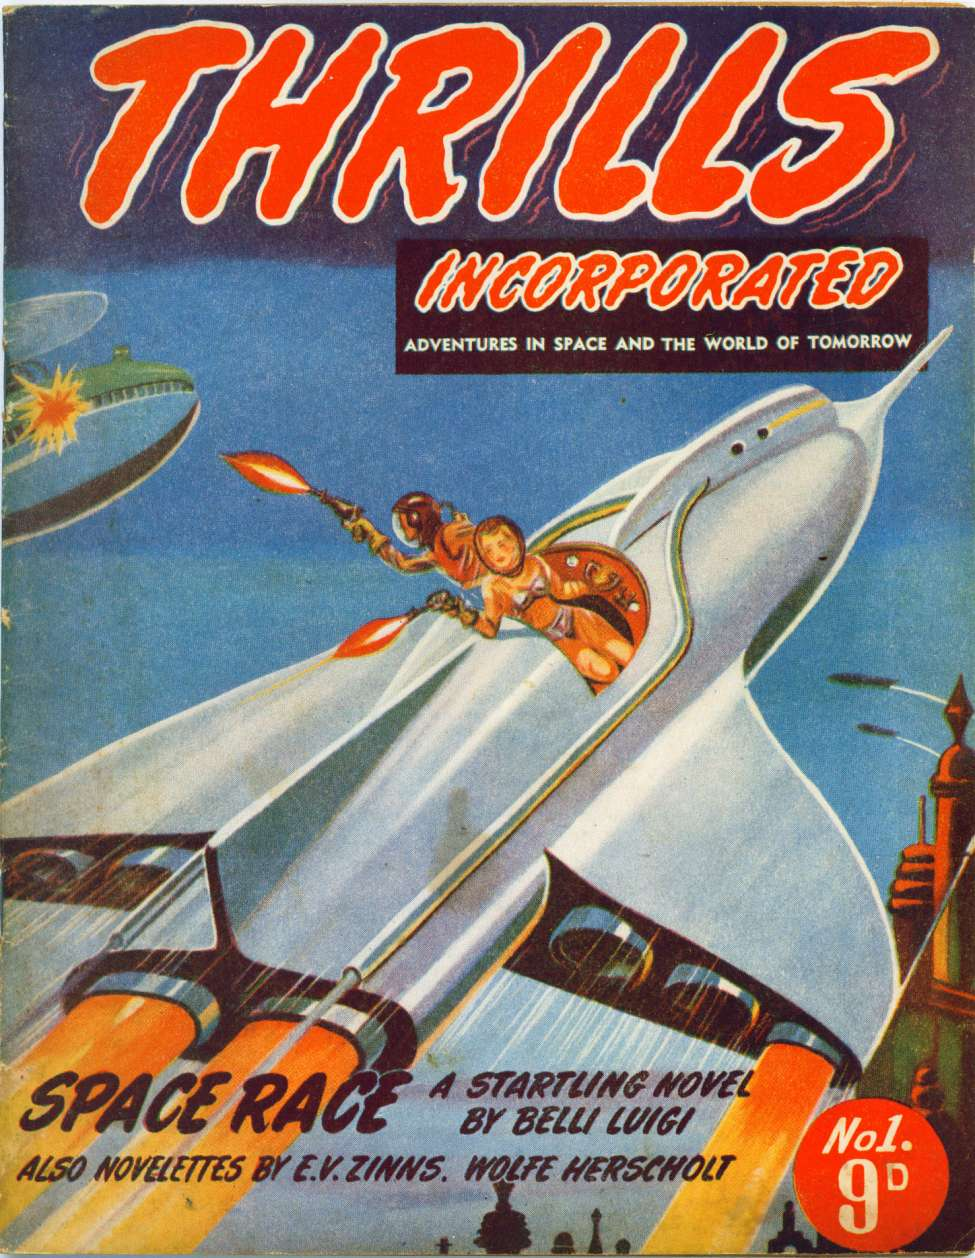 Comic Book Cover For Thrills Incorporated 01 - Space Race - Belli Luigi